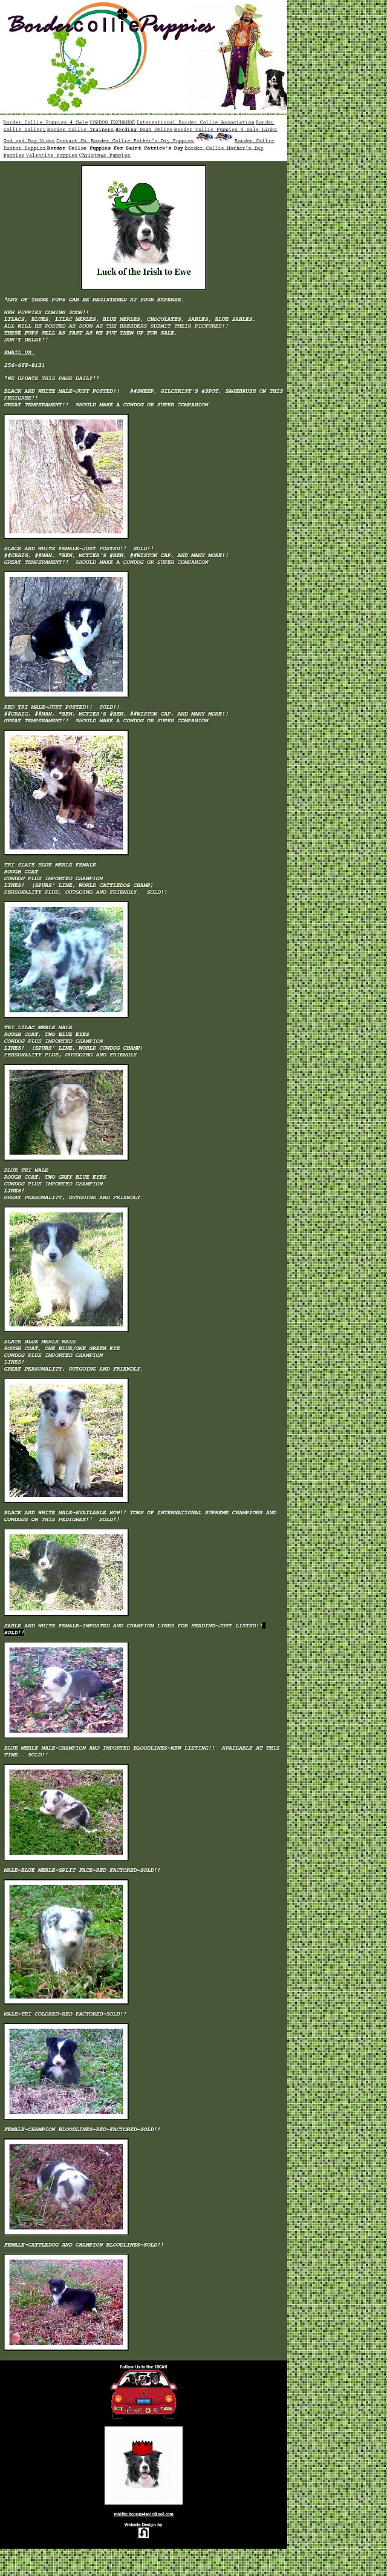 bordercolliesaintpatricksdaypuppies